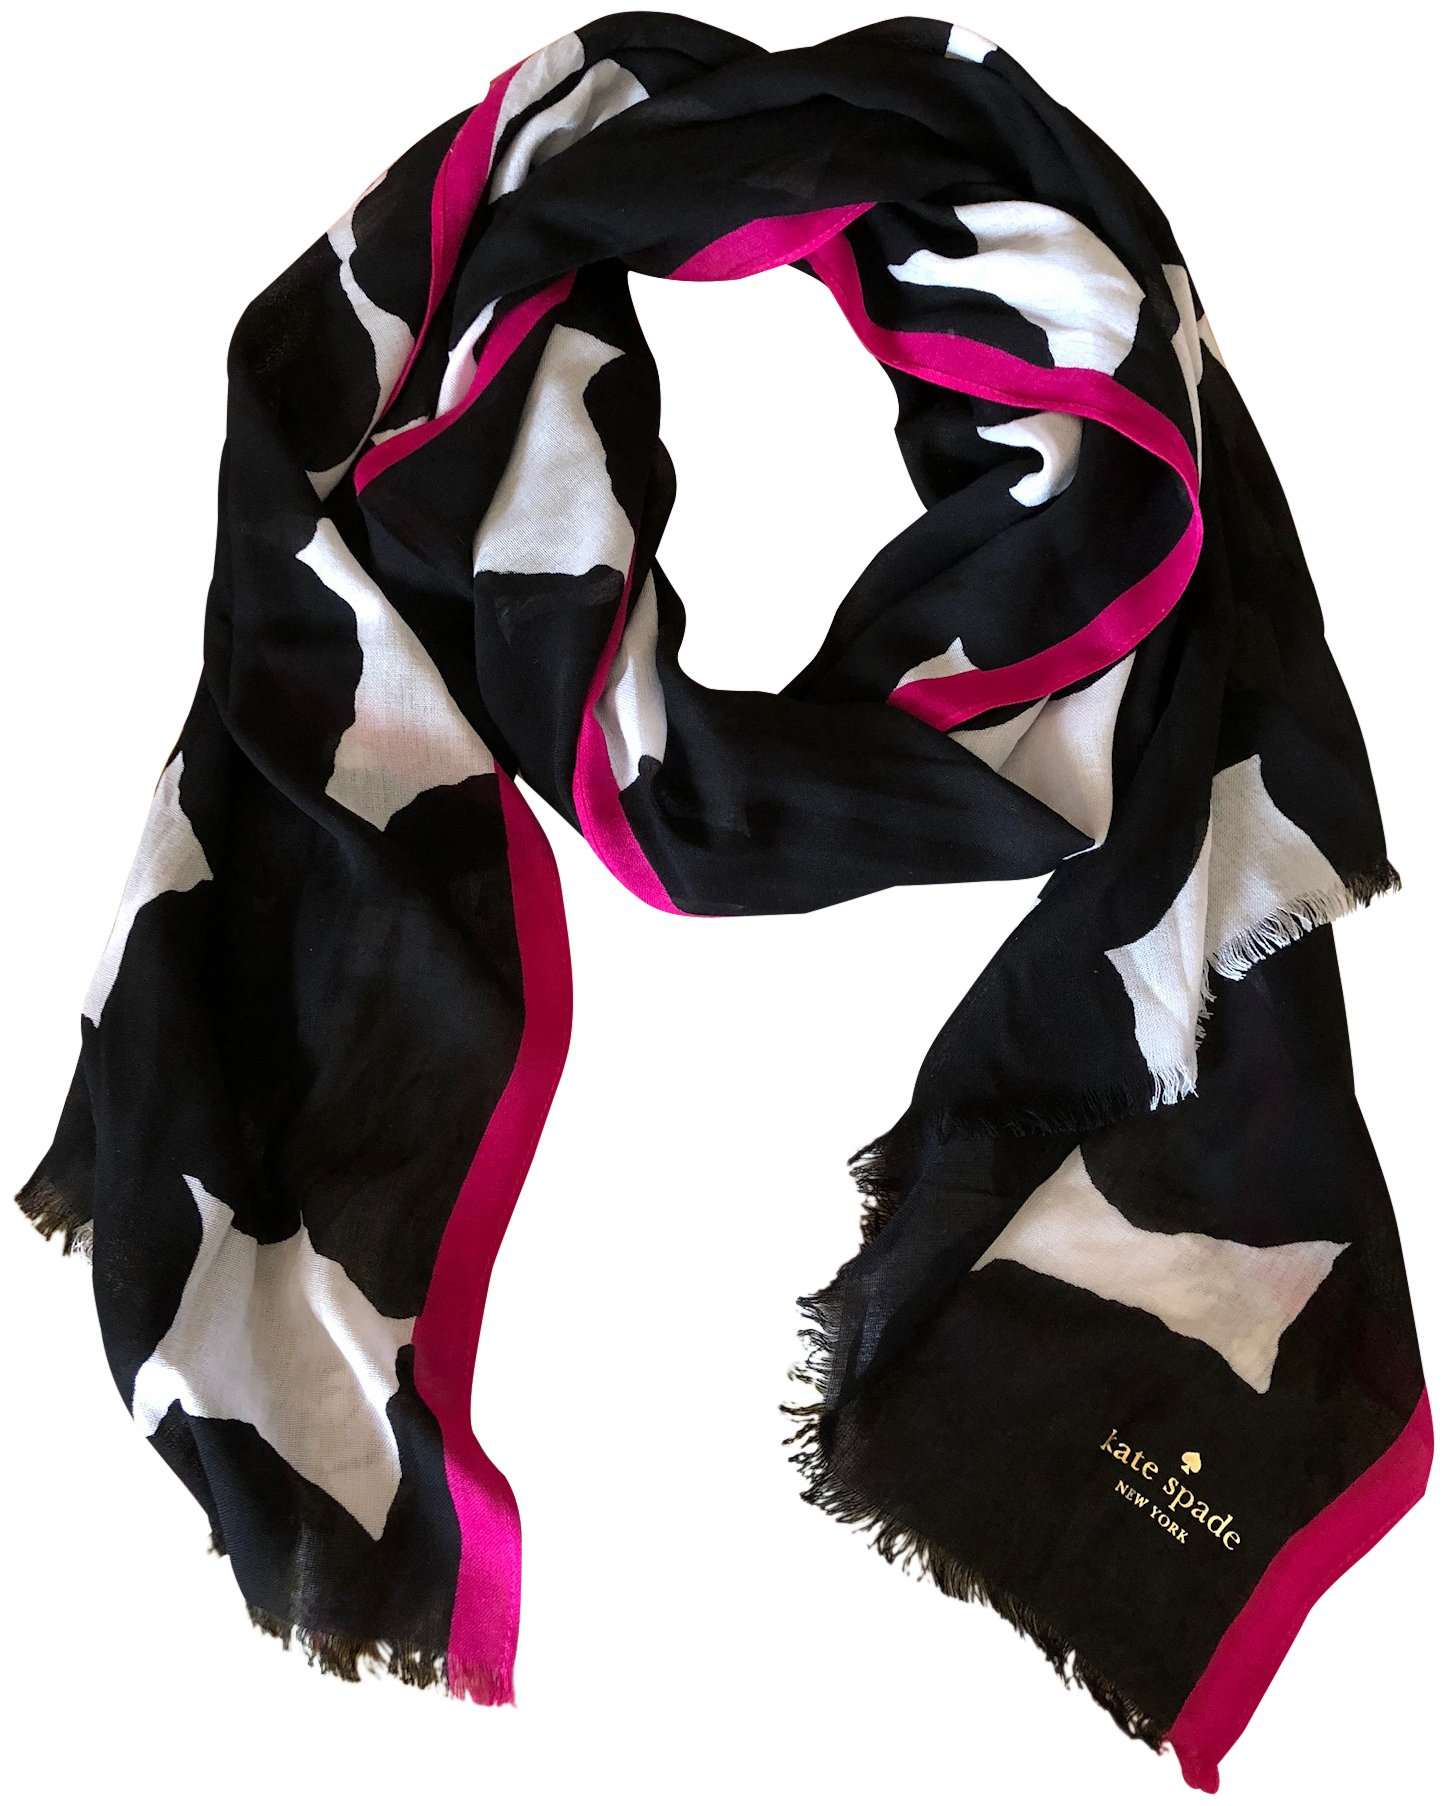 Kate Spade Woman's Blot Dot Oblong Scarf Black White by Kate Spade New York